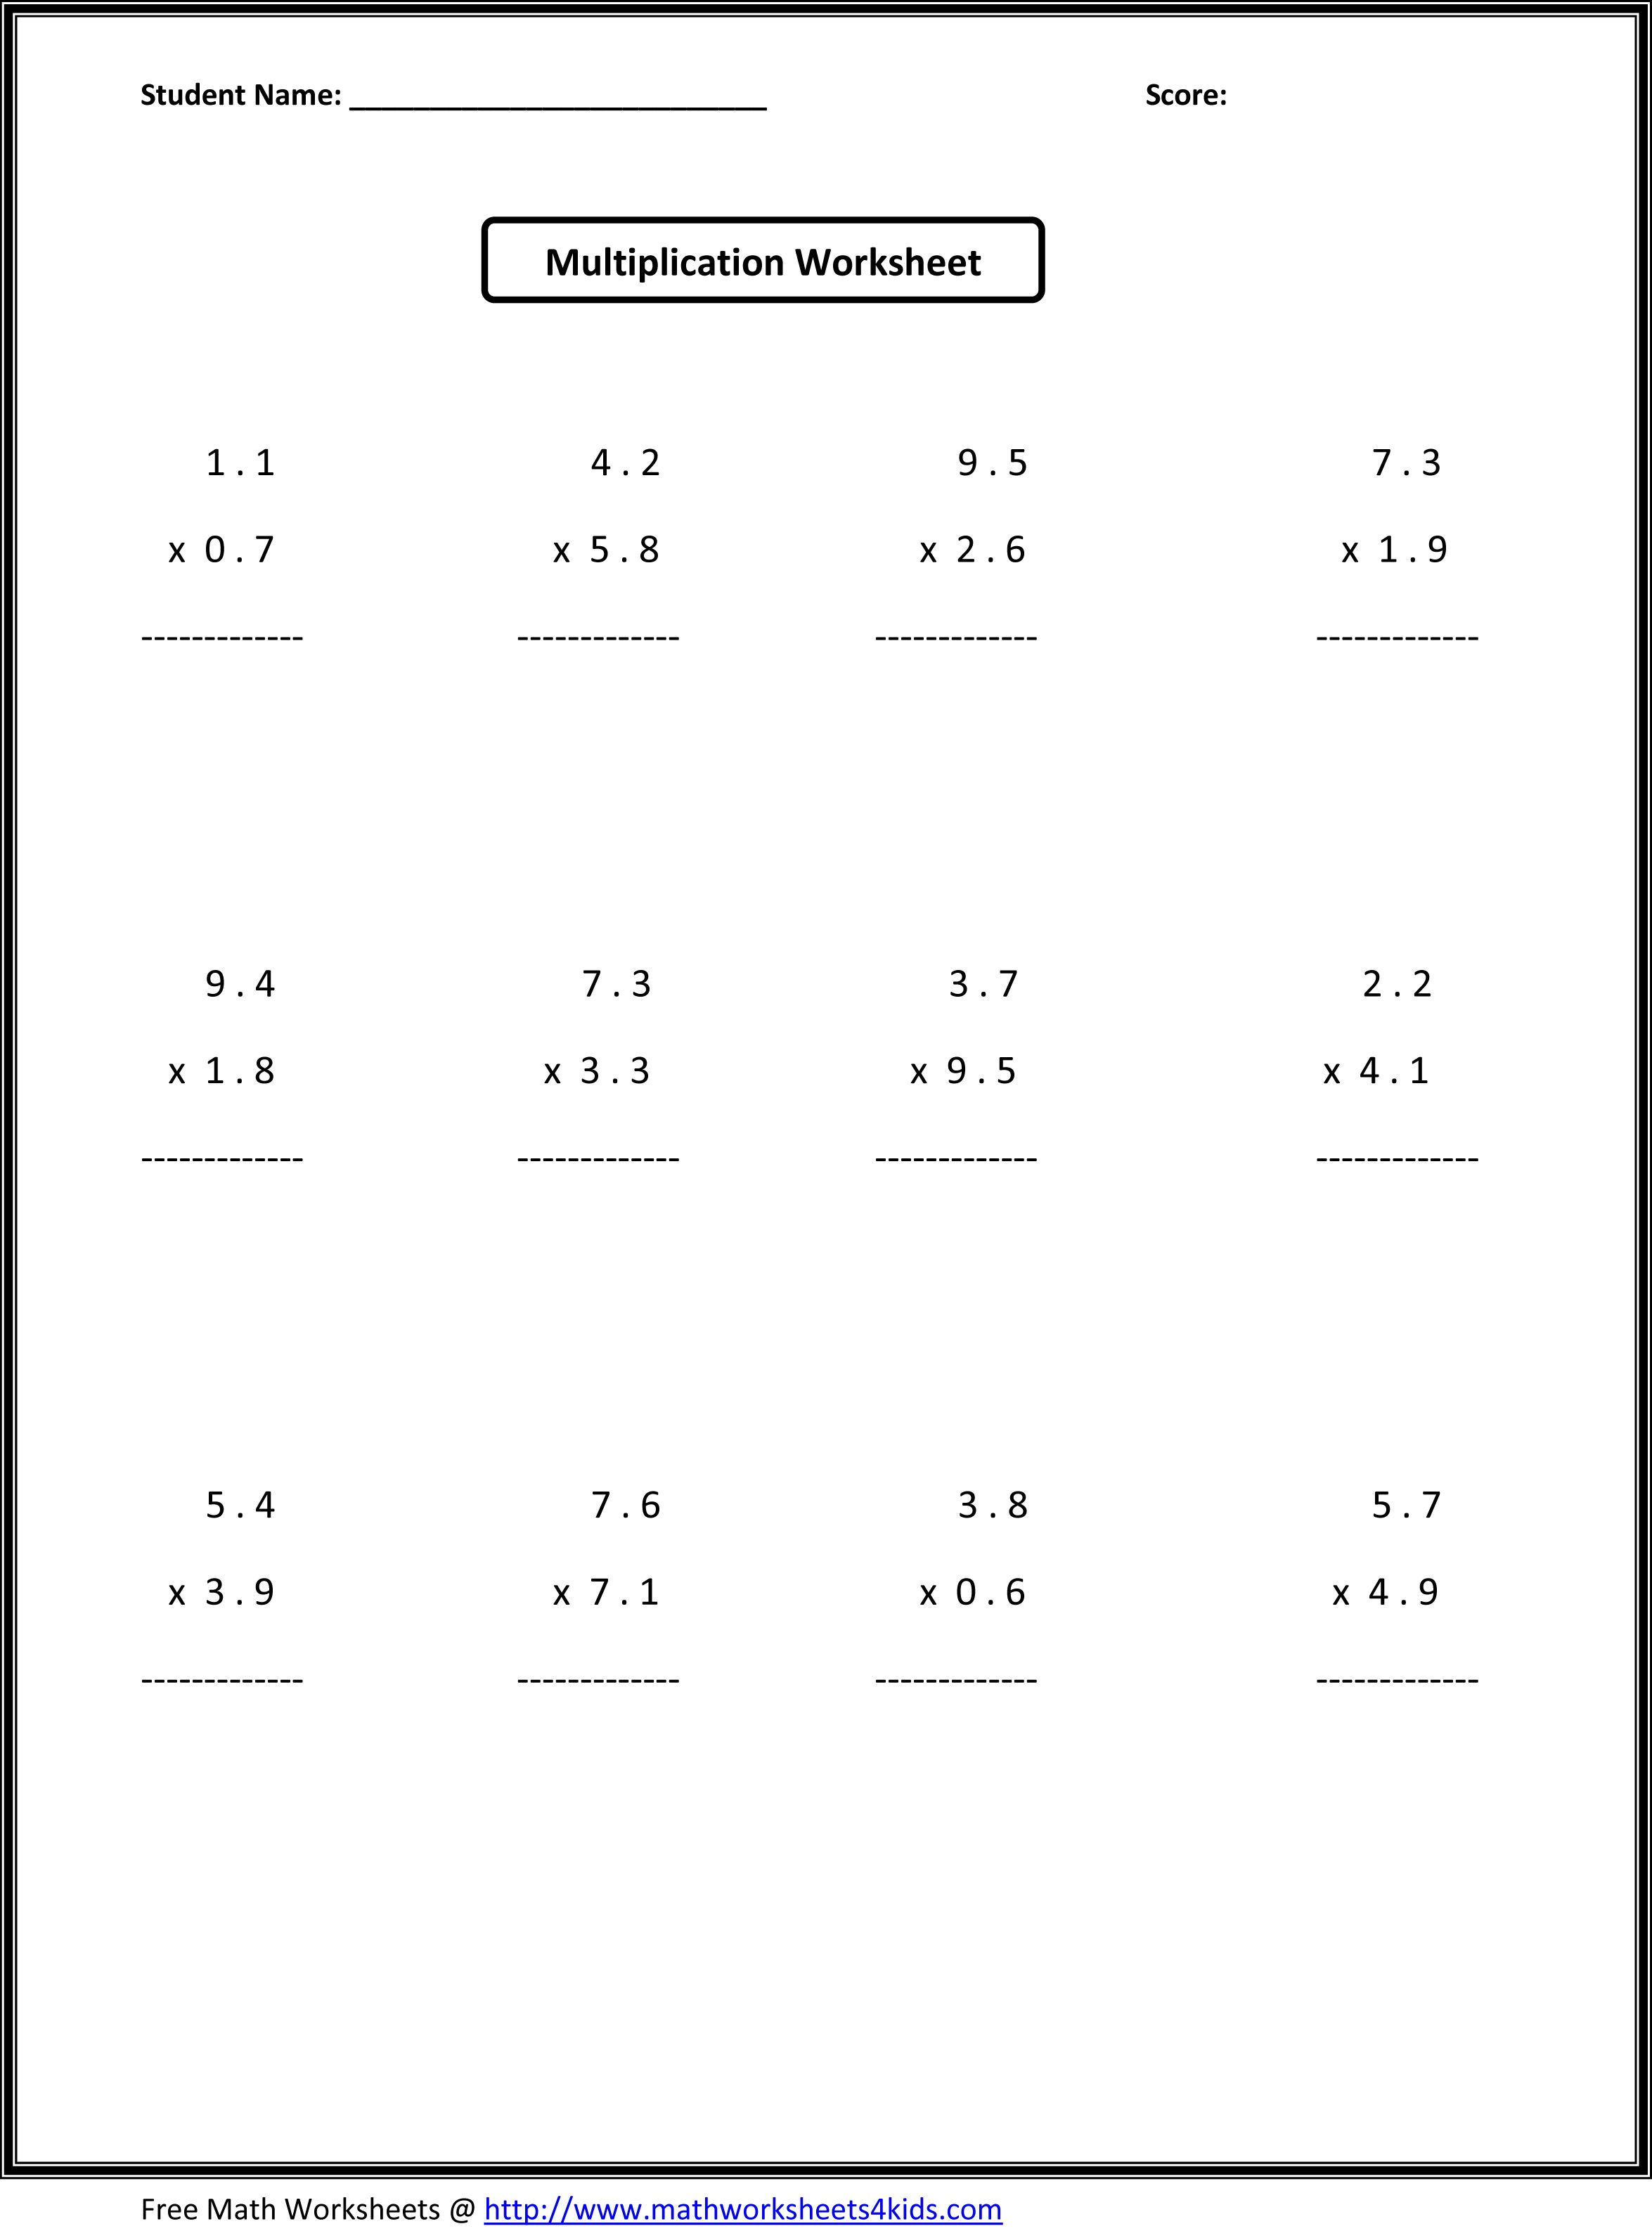 Worksheets Math Worksheet For 7th Grade 7th grade math worksheets value absolute based on basic math